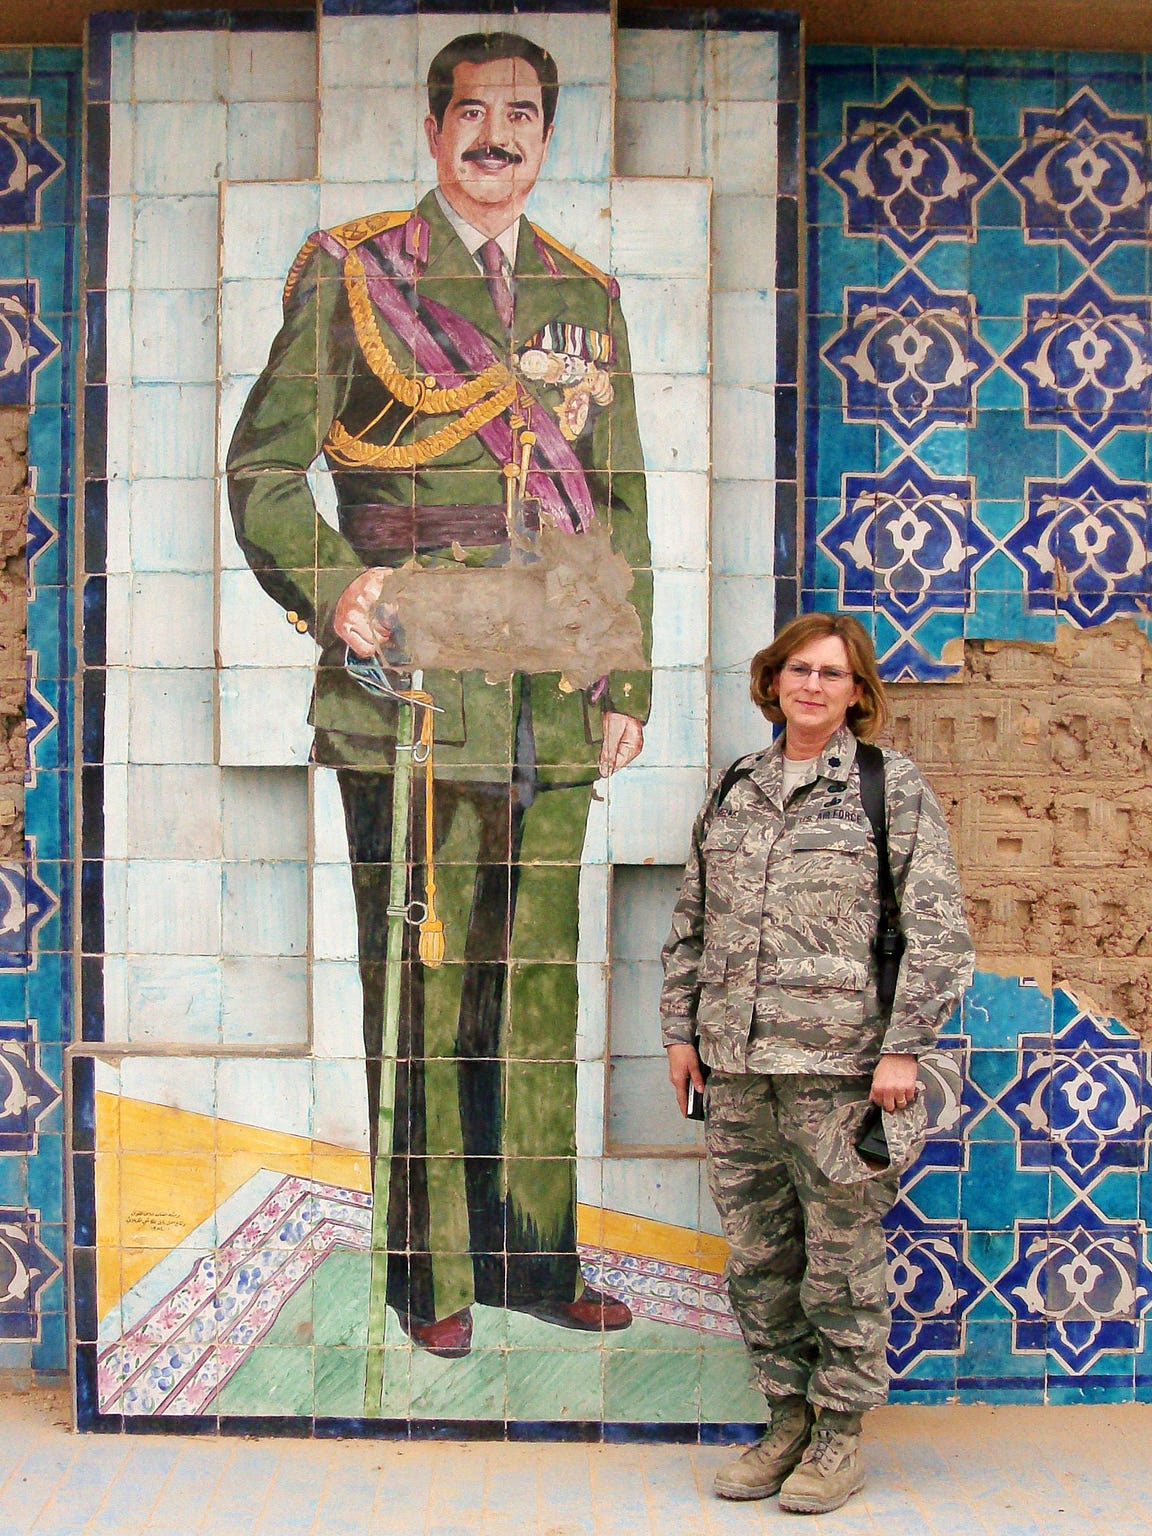 Tami Mielke is shown in front of a mural of Saddam Hussein during her deployment in Iraq.